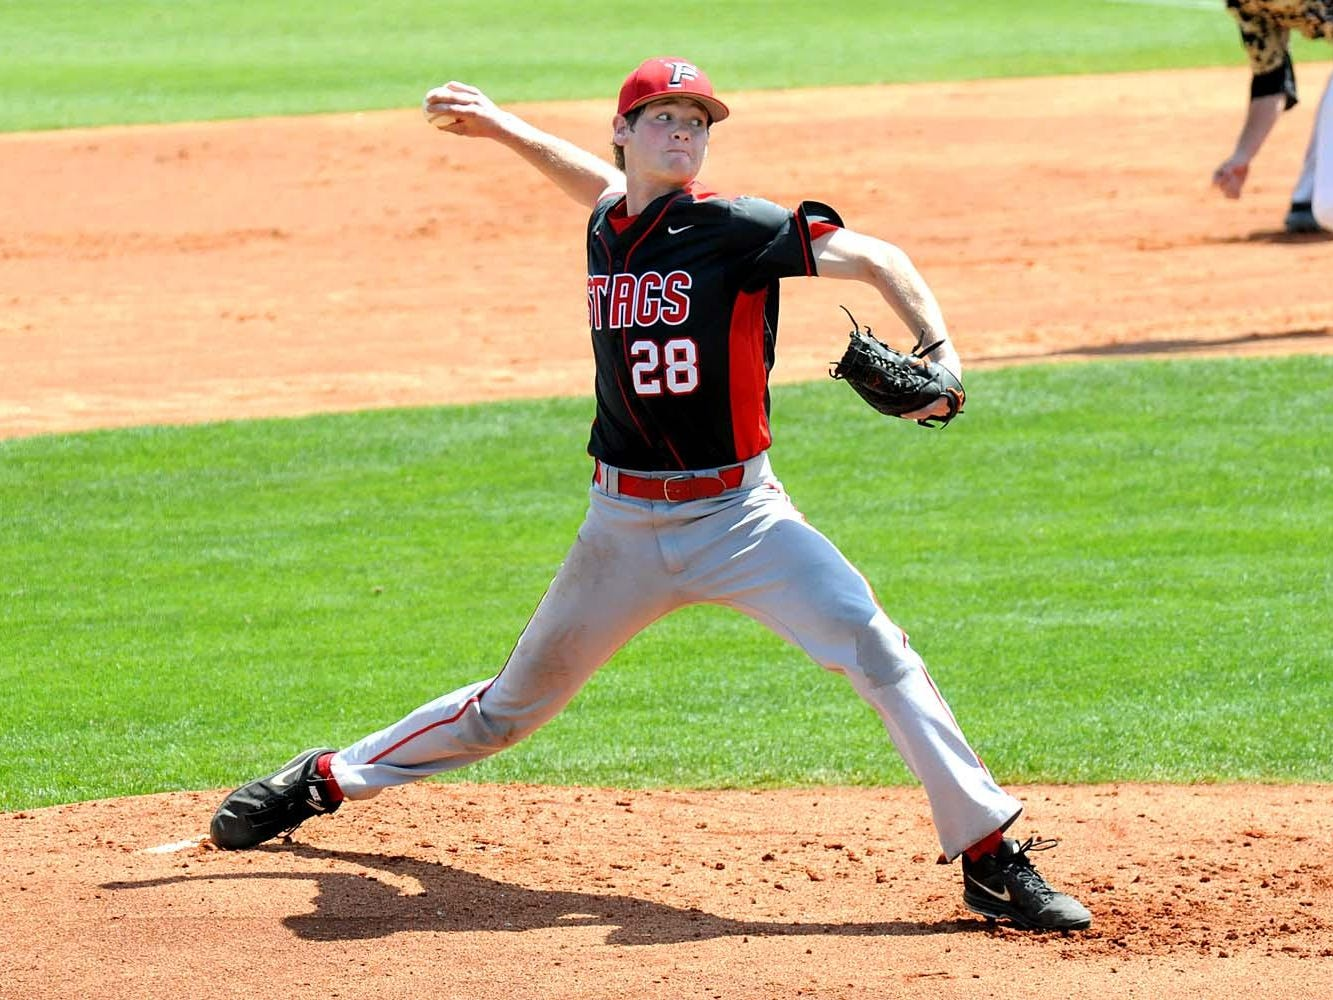 Mike Wallace delivers a pitch in Fairfield's road game against Central Florida on March 15.